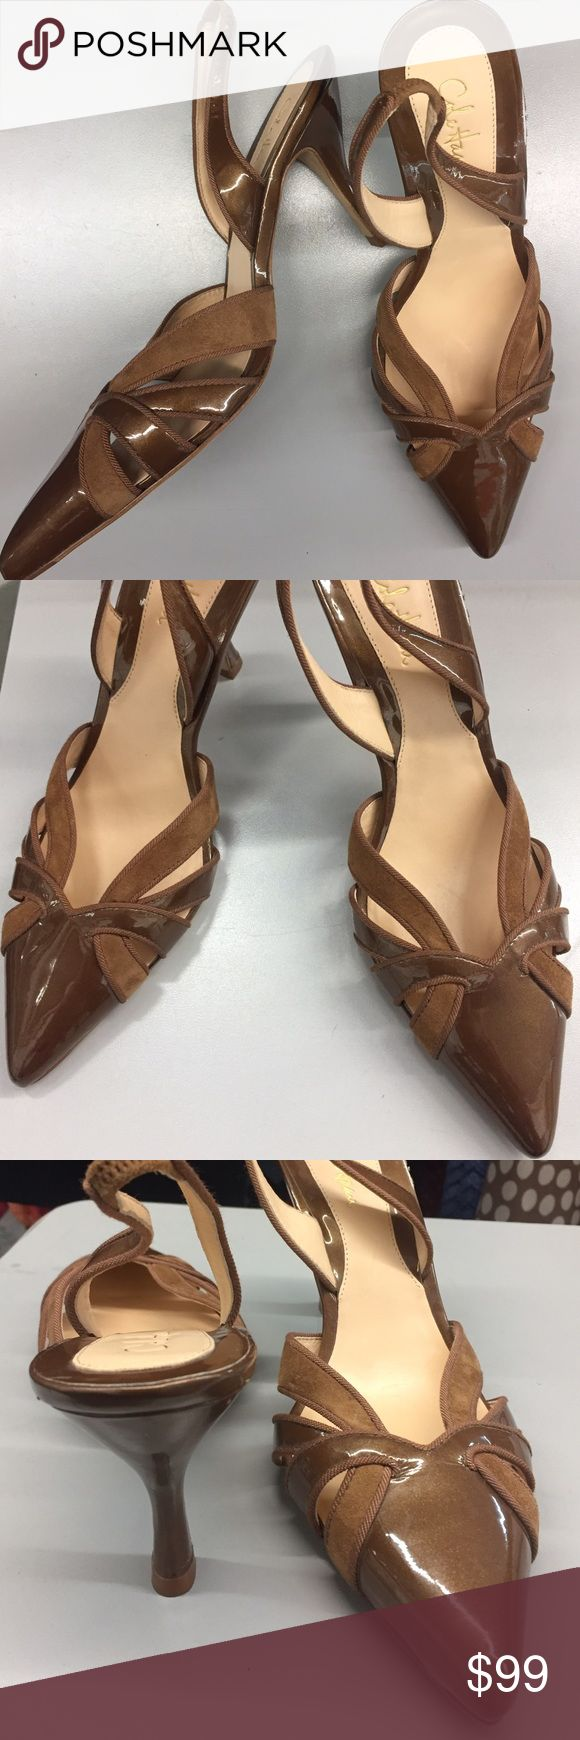 """✅SALE✅COLE HAAN SLINGBACK HEELS SIZE 7👠WORN ONCE ✅SALE✅COLE HAAN SLINGBACK HEELS SIZE 7👠WORN ONCE👠HEELS JUST HAVE A FEW MINOR SCRATCHES👠HEEL HEIGHT APPROX. 3""""👠MAKE OFFER👠 Cole Haan Shoes Heels"""